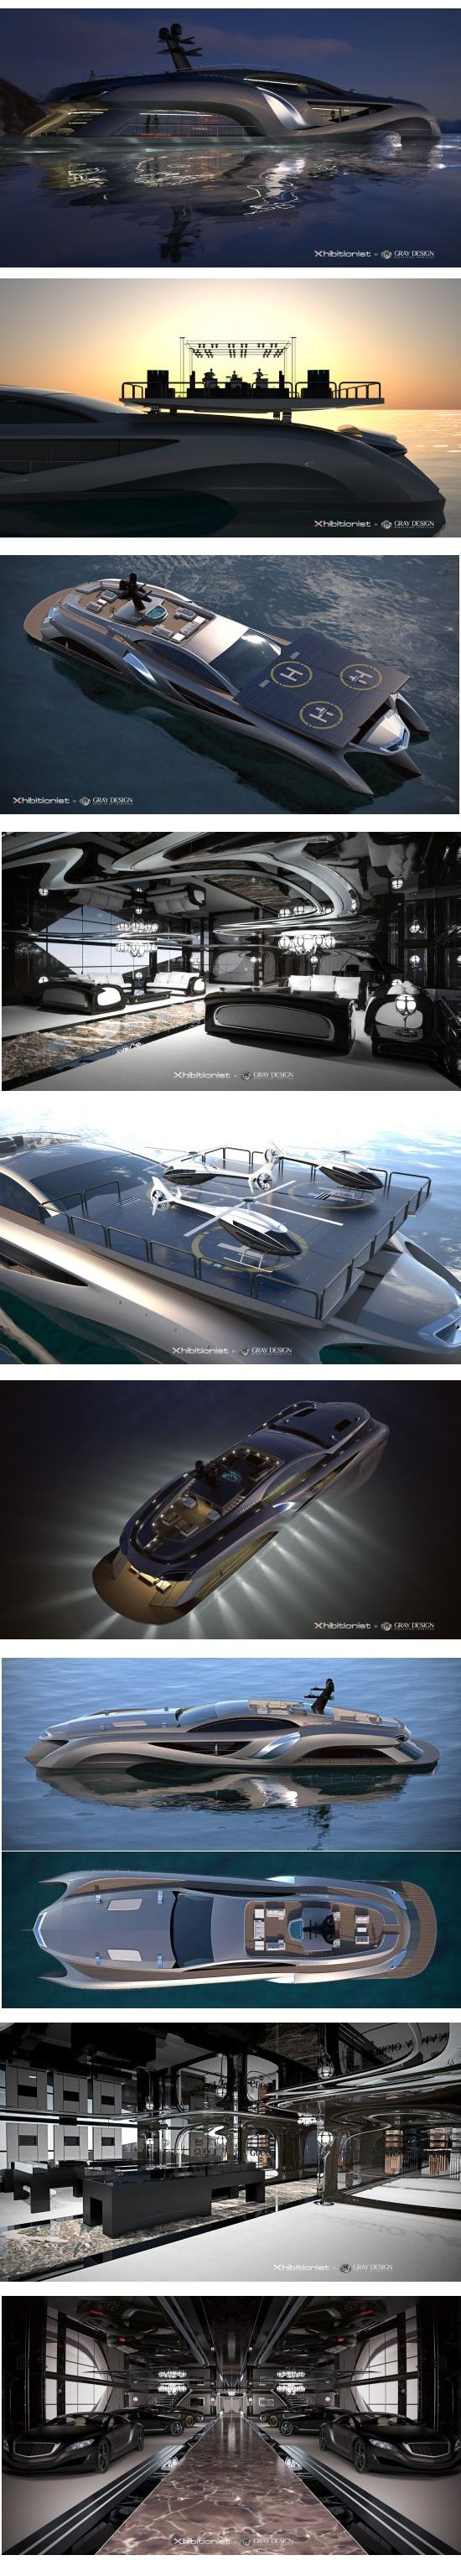 Concept Superyacht Xhibitionist by Gray Design.